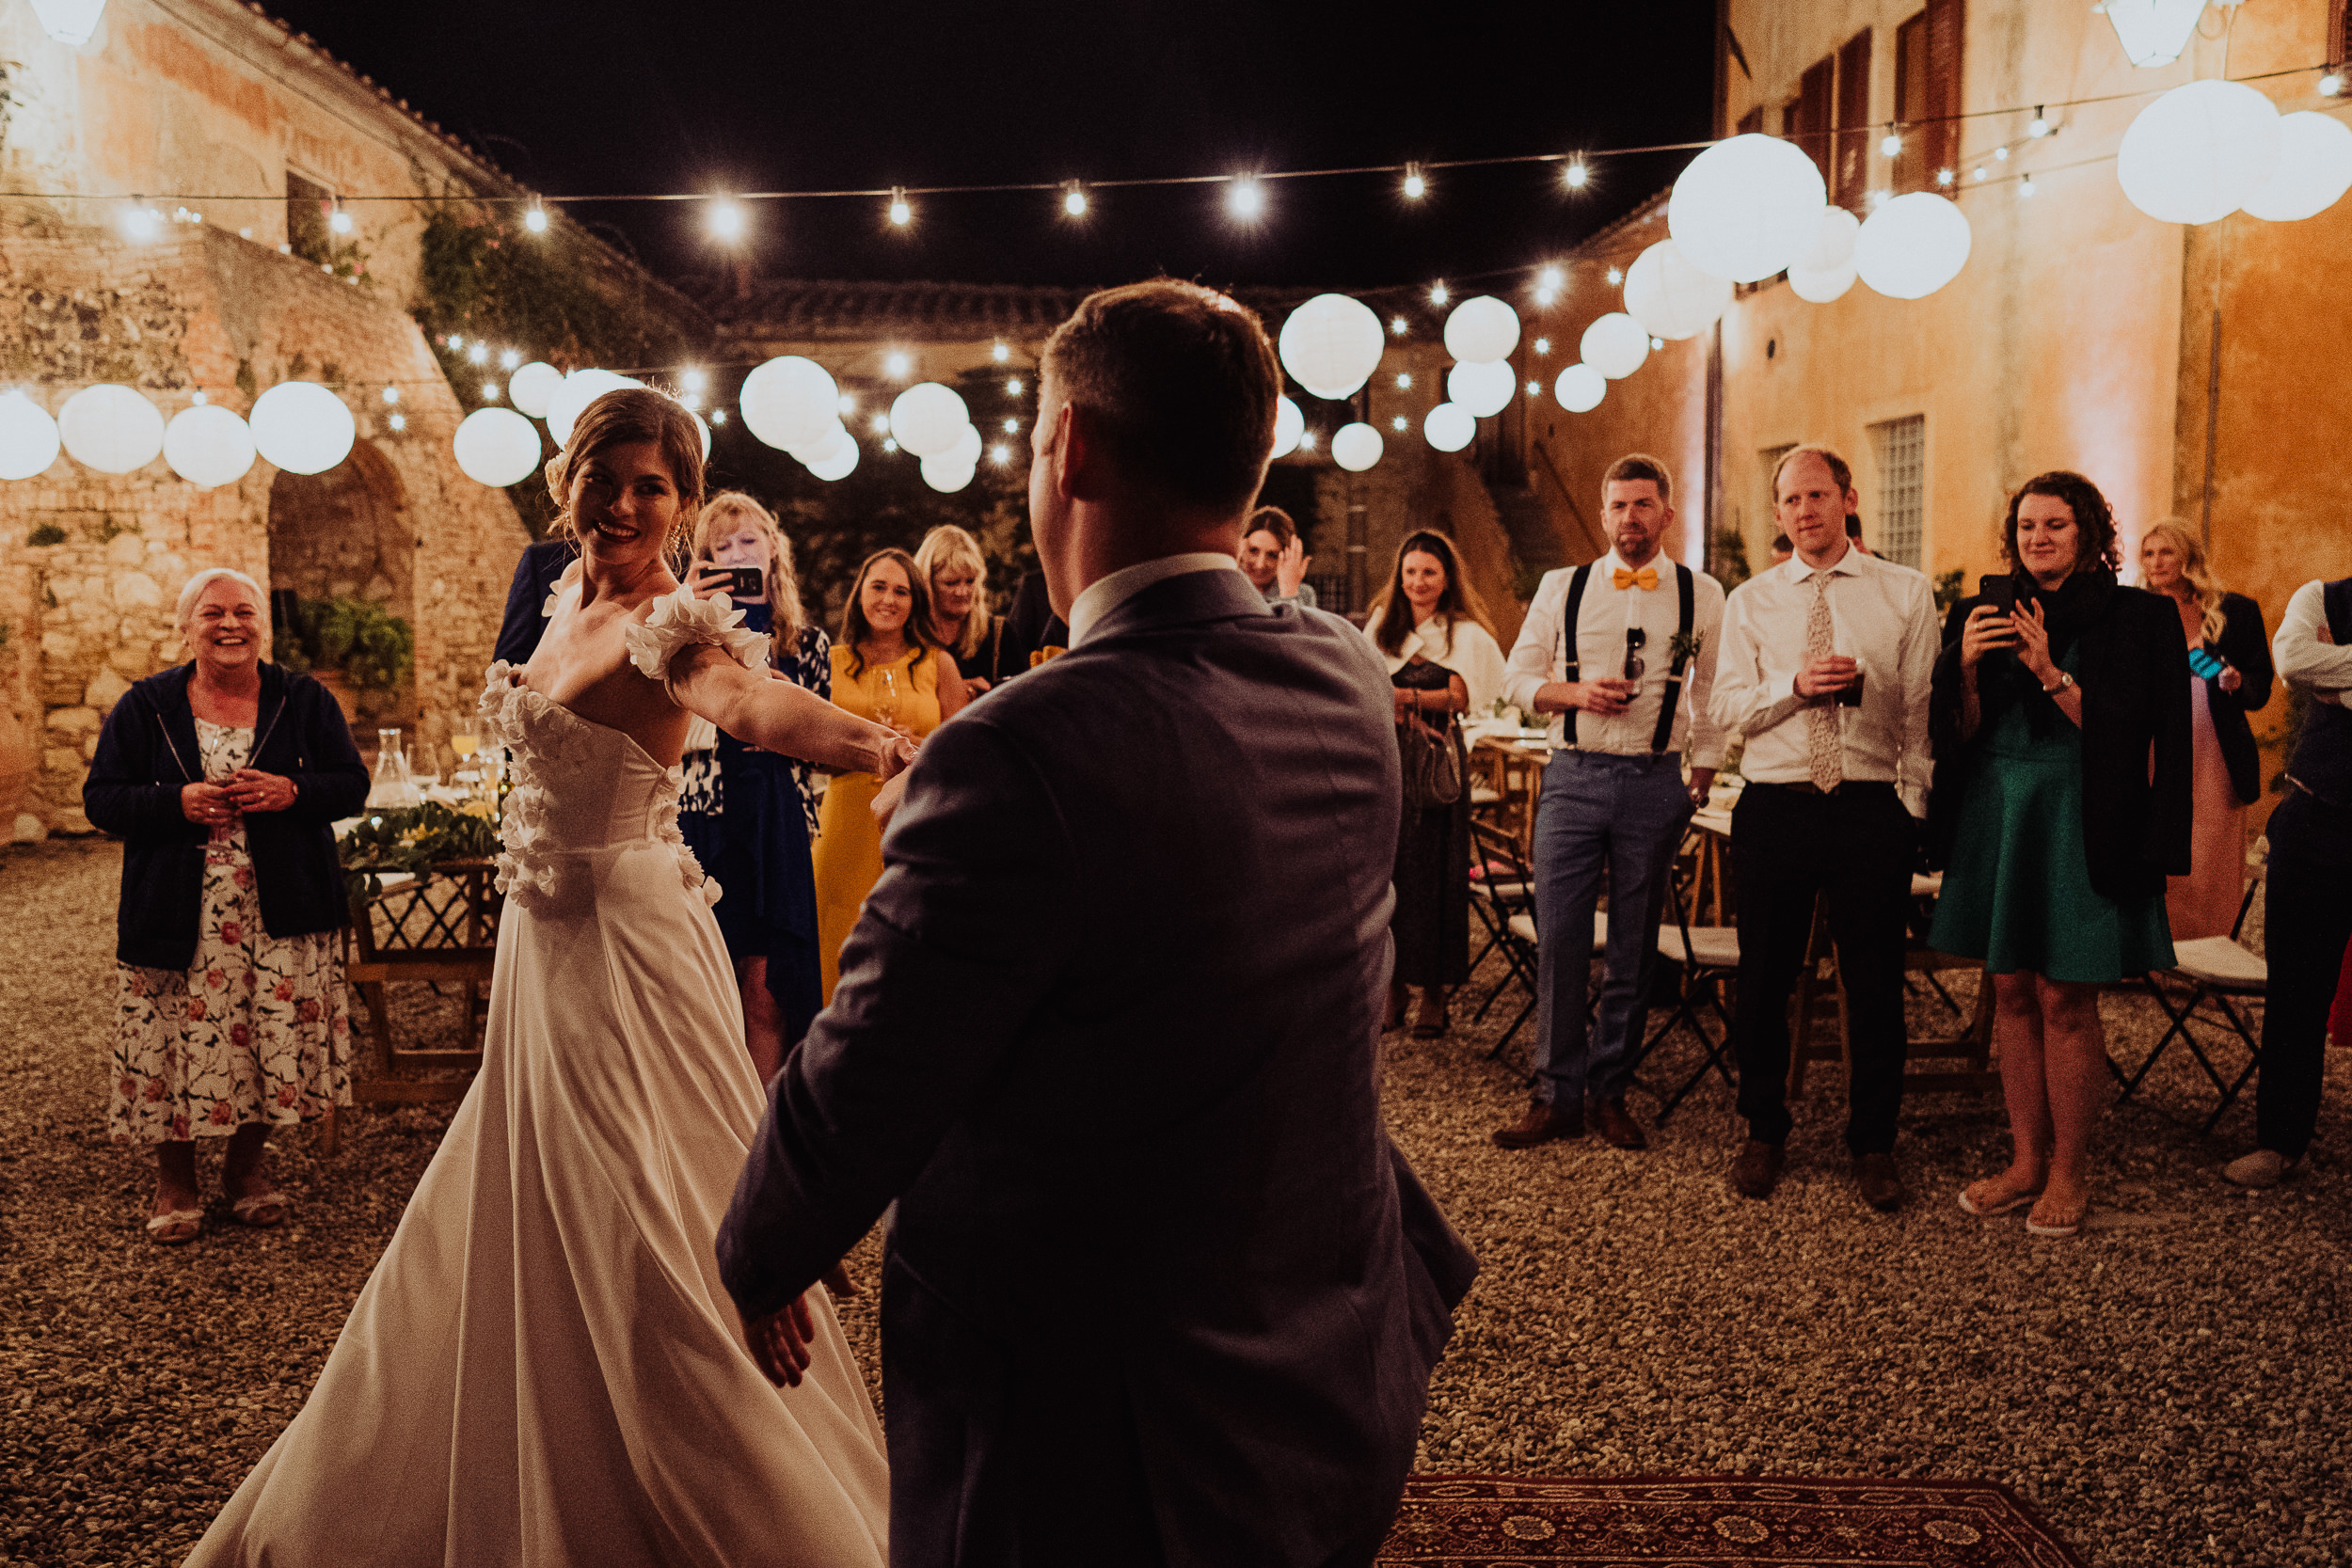 Tuscan Villa Wedding - The Bride and Groom dance in the courtyard at Villa Catignano